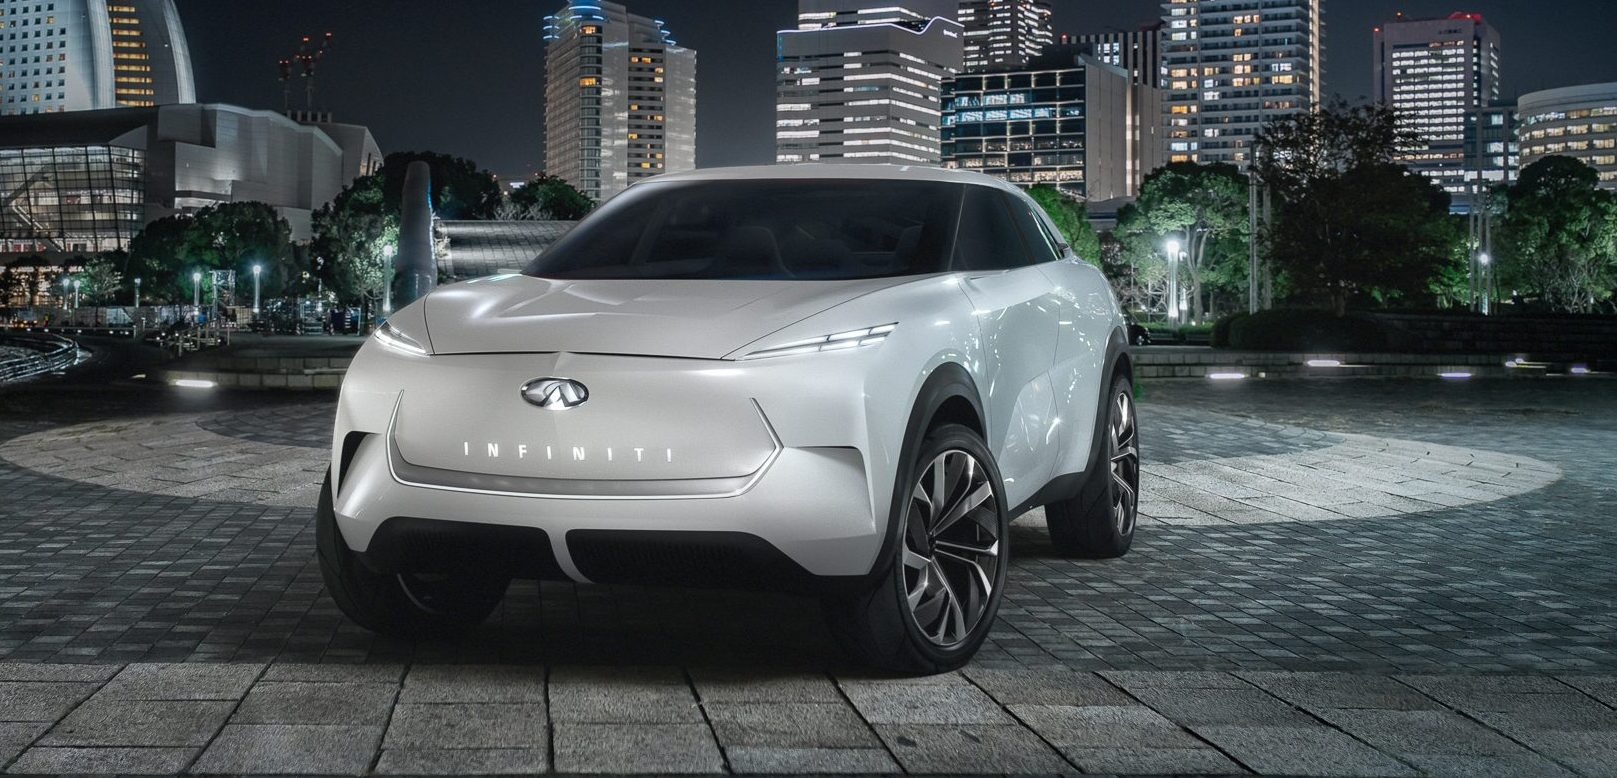 INFINITI unveils the design of its first all-electric SUV ahead of debut